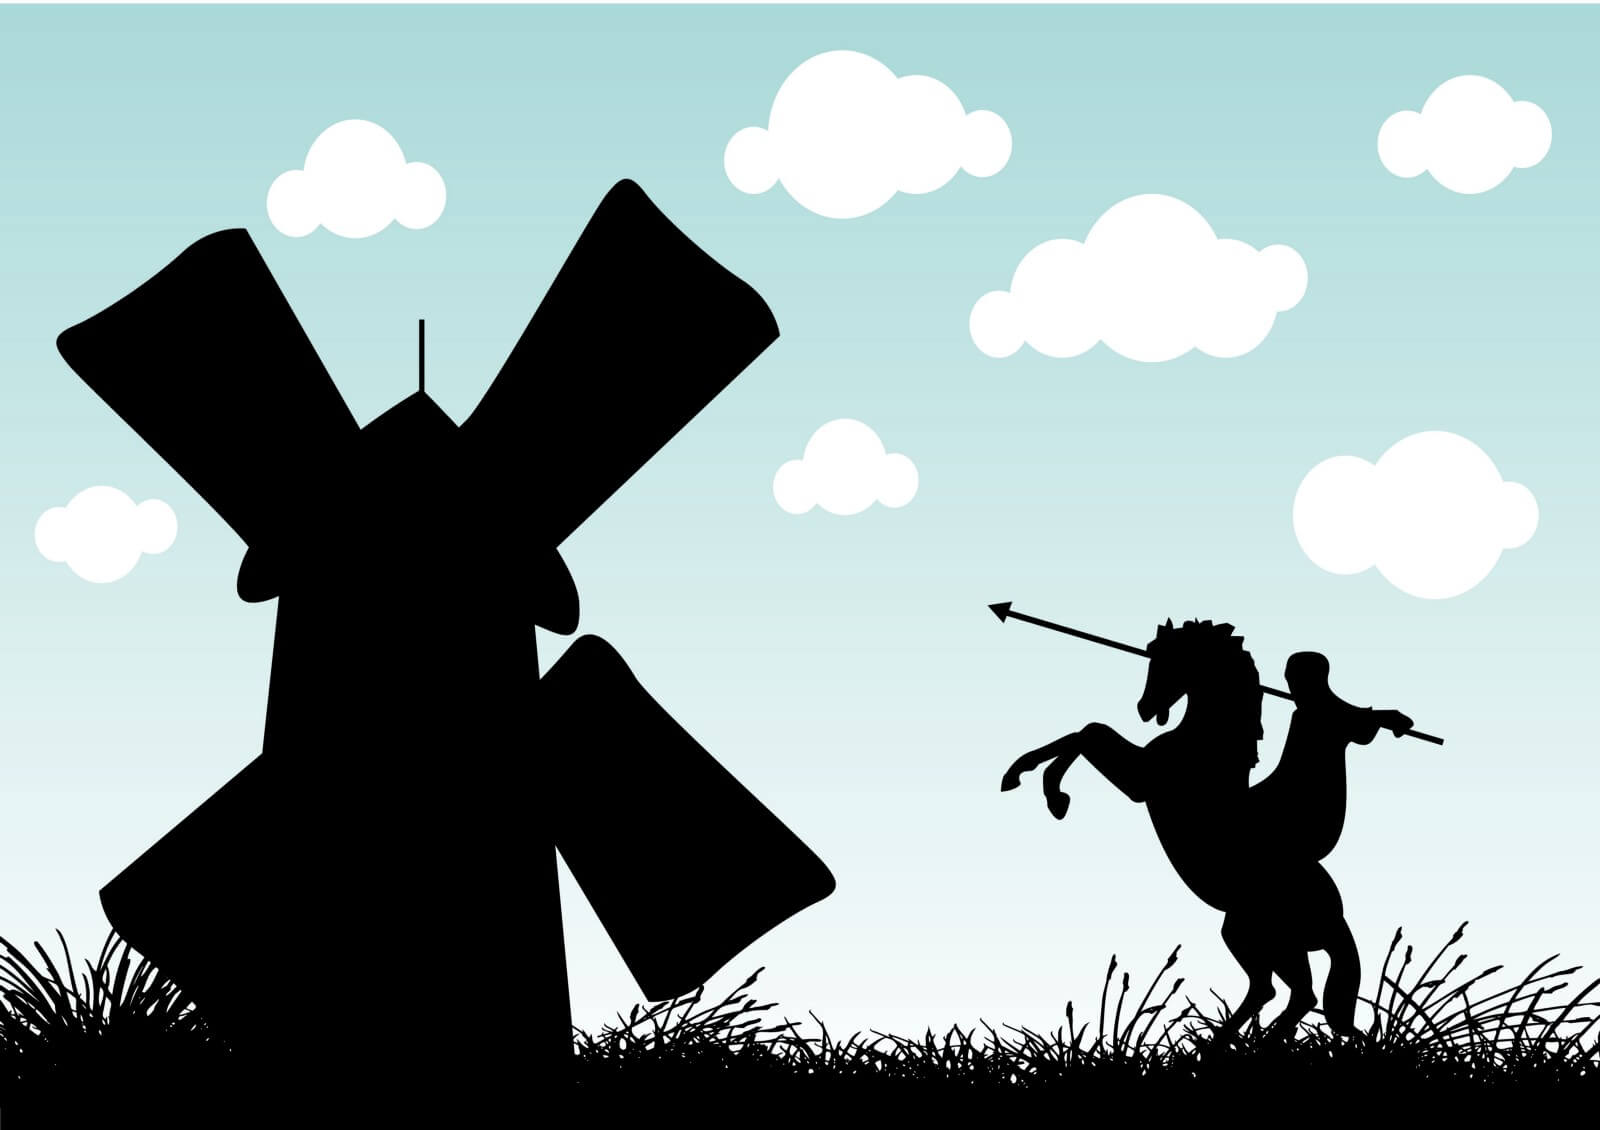 Cartoon windmill in black with a Don Quixote like character on a horse with a spear charging towards it